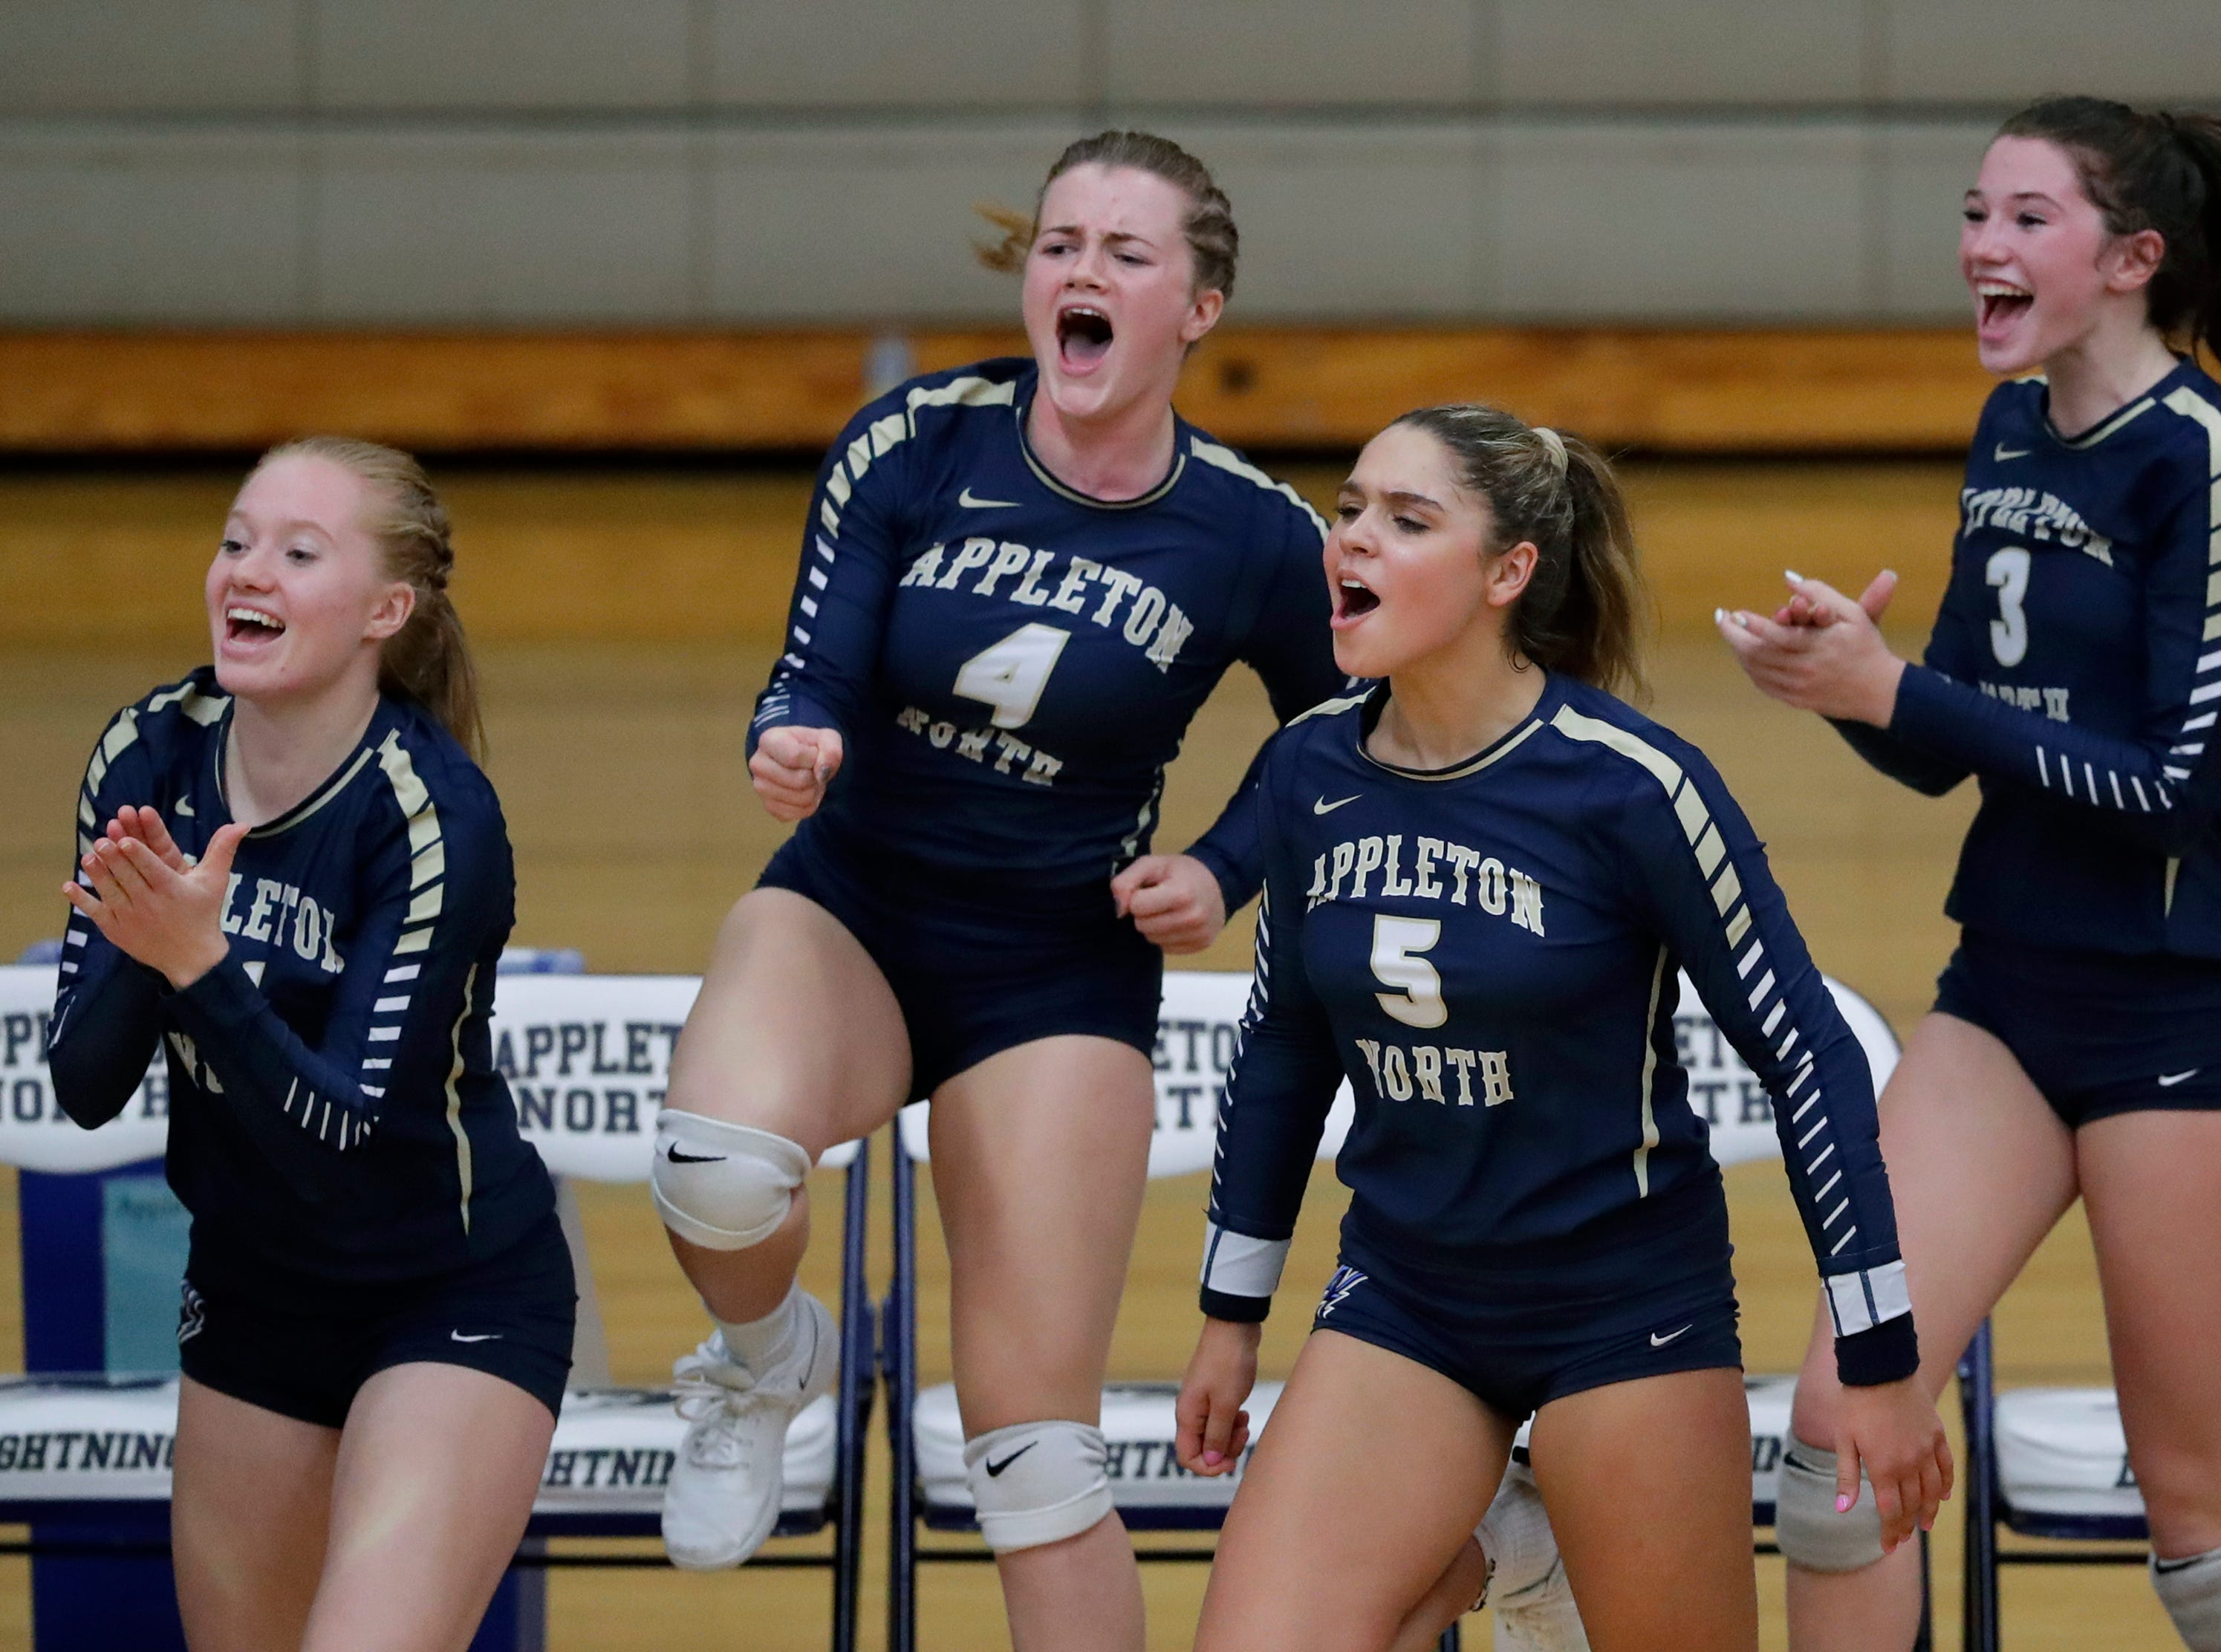 Appleton North High School's players celebrate winning a point against Kimberly High School during their girls volleyball match Thursday, Sept. 27, 2018, in Appleton, Wis. 